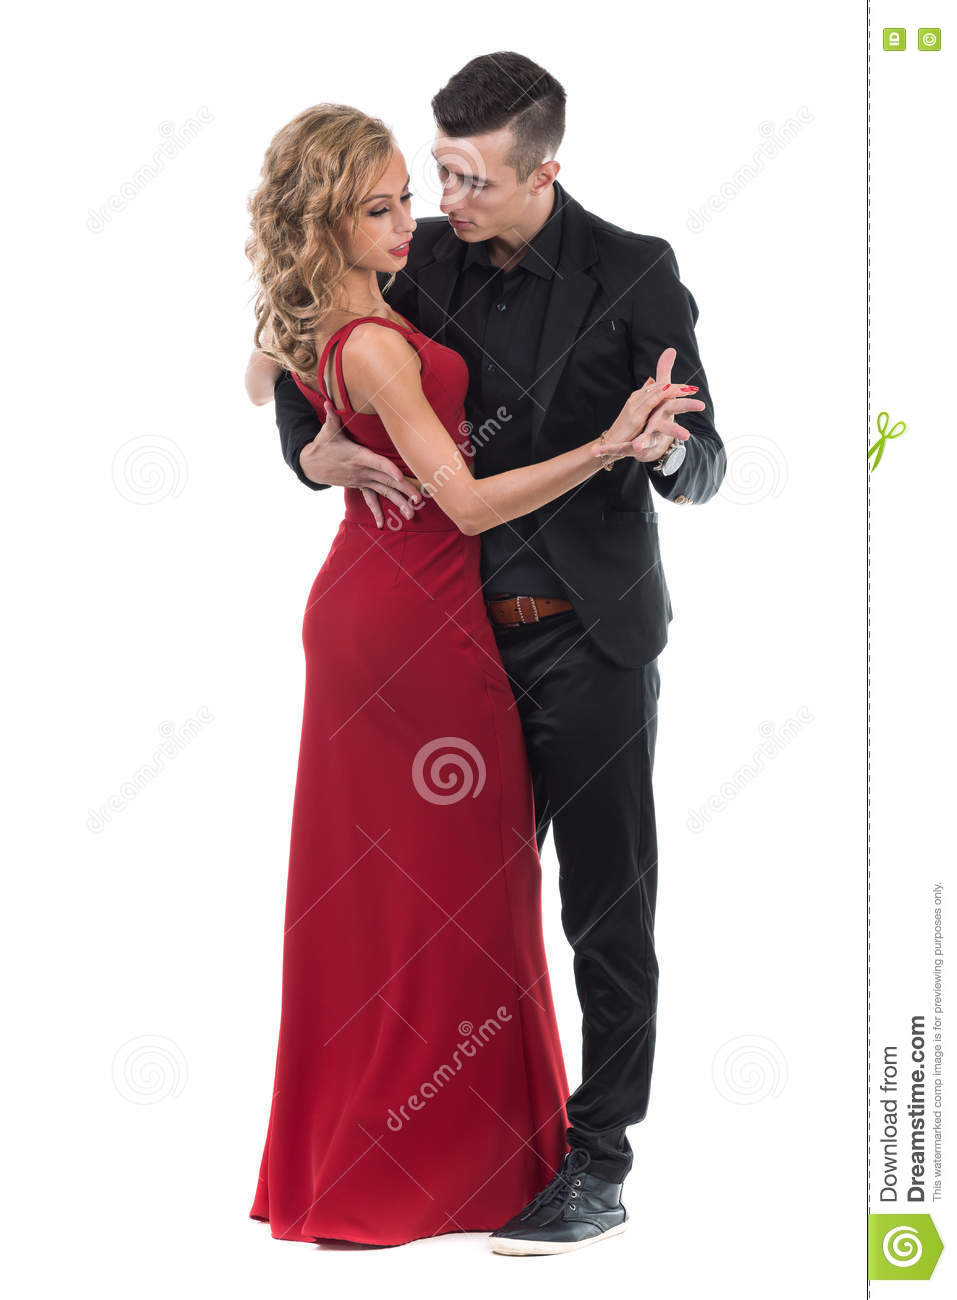 baile datinggirl i was dating lost interest